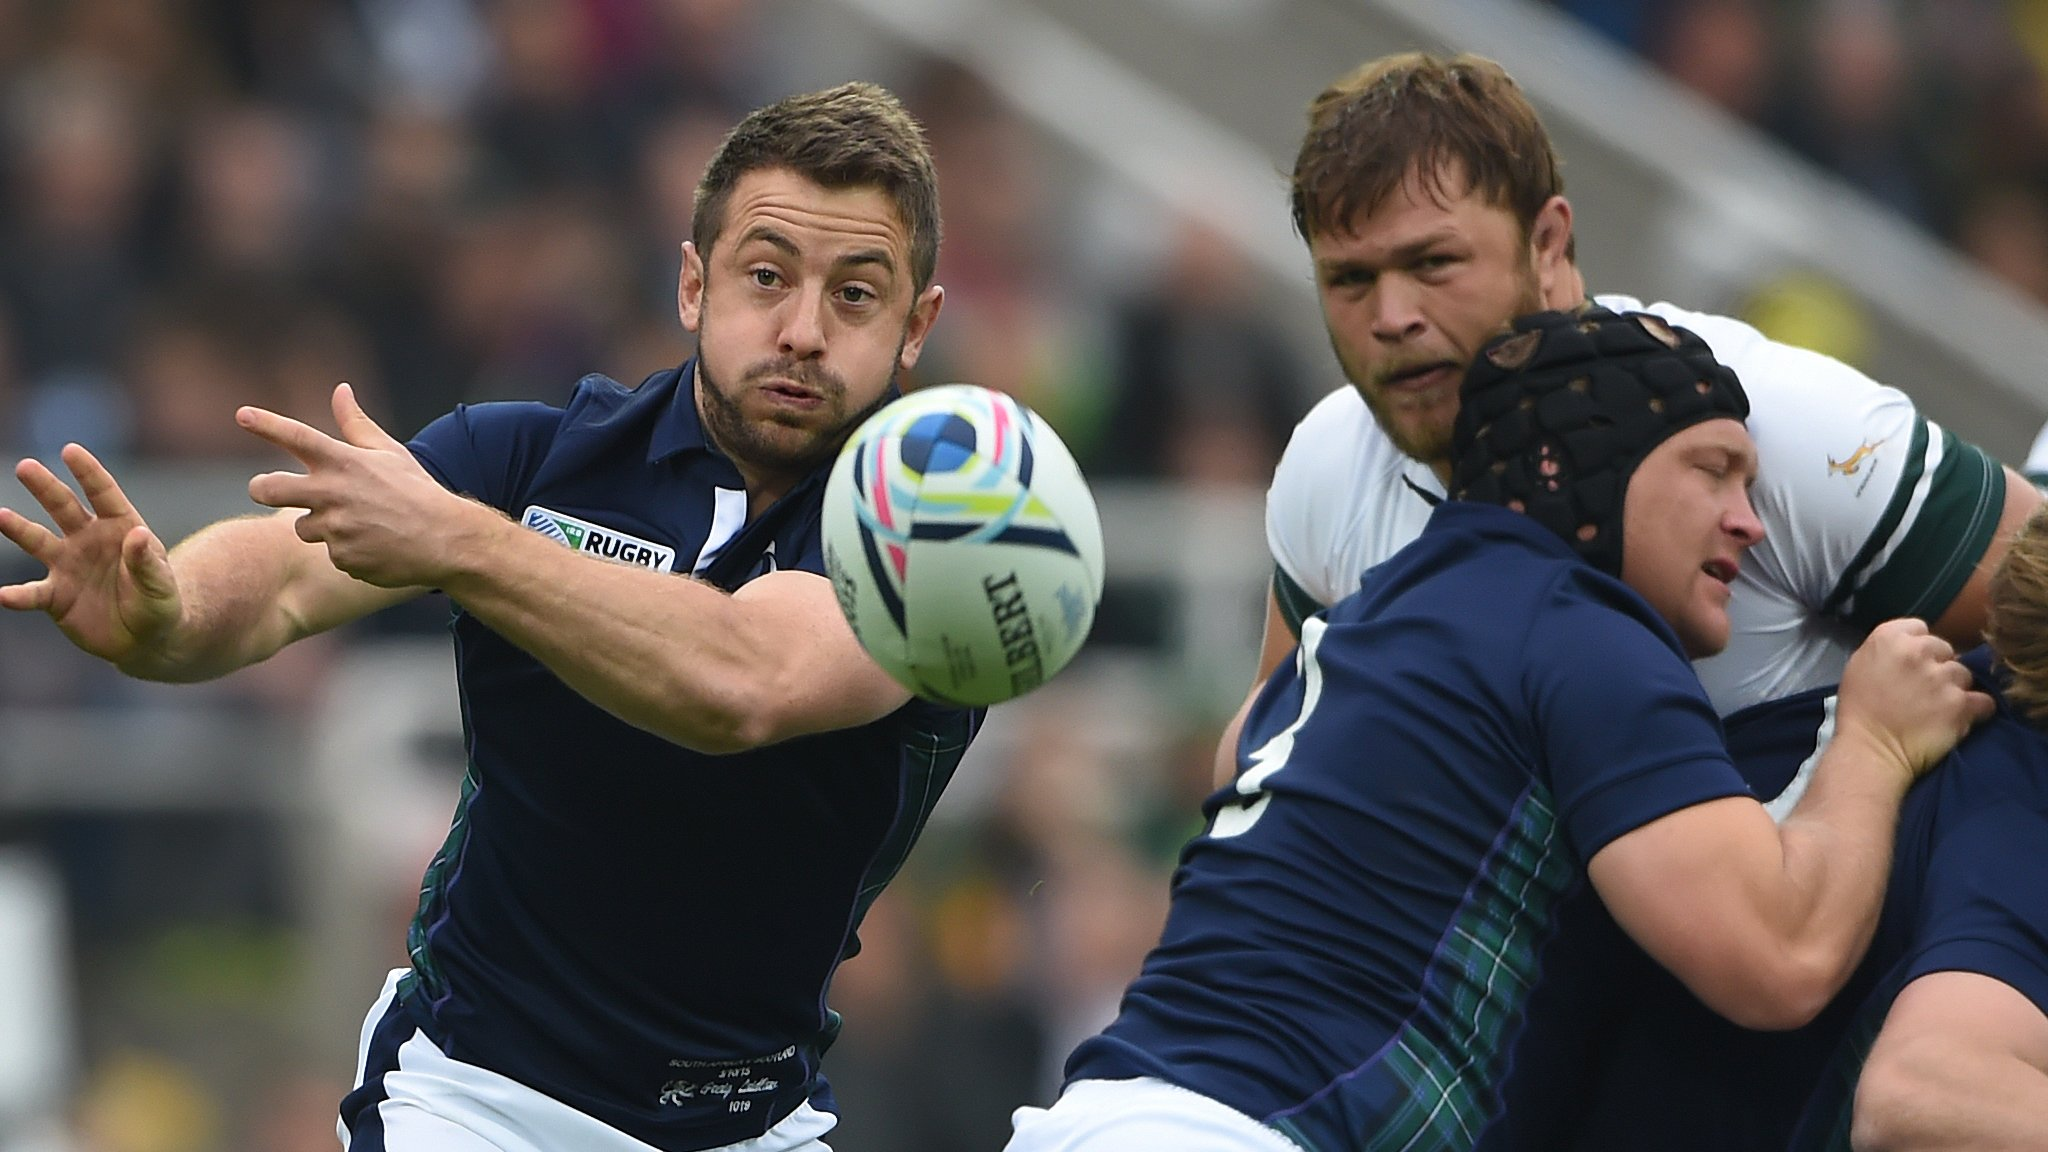 Scotland v South Africa: Beating Springboks would be 'best win' - Gregor Townsend